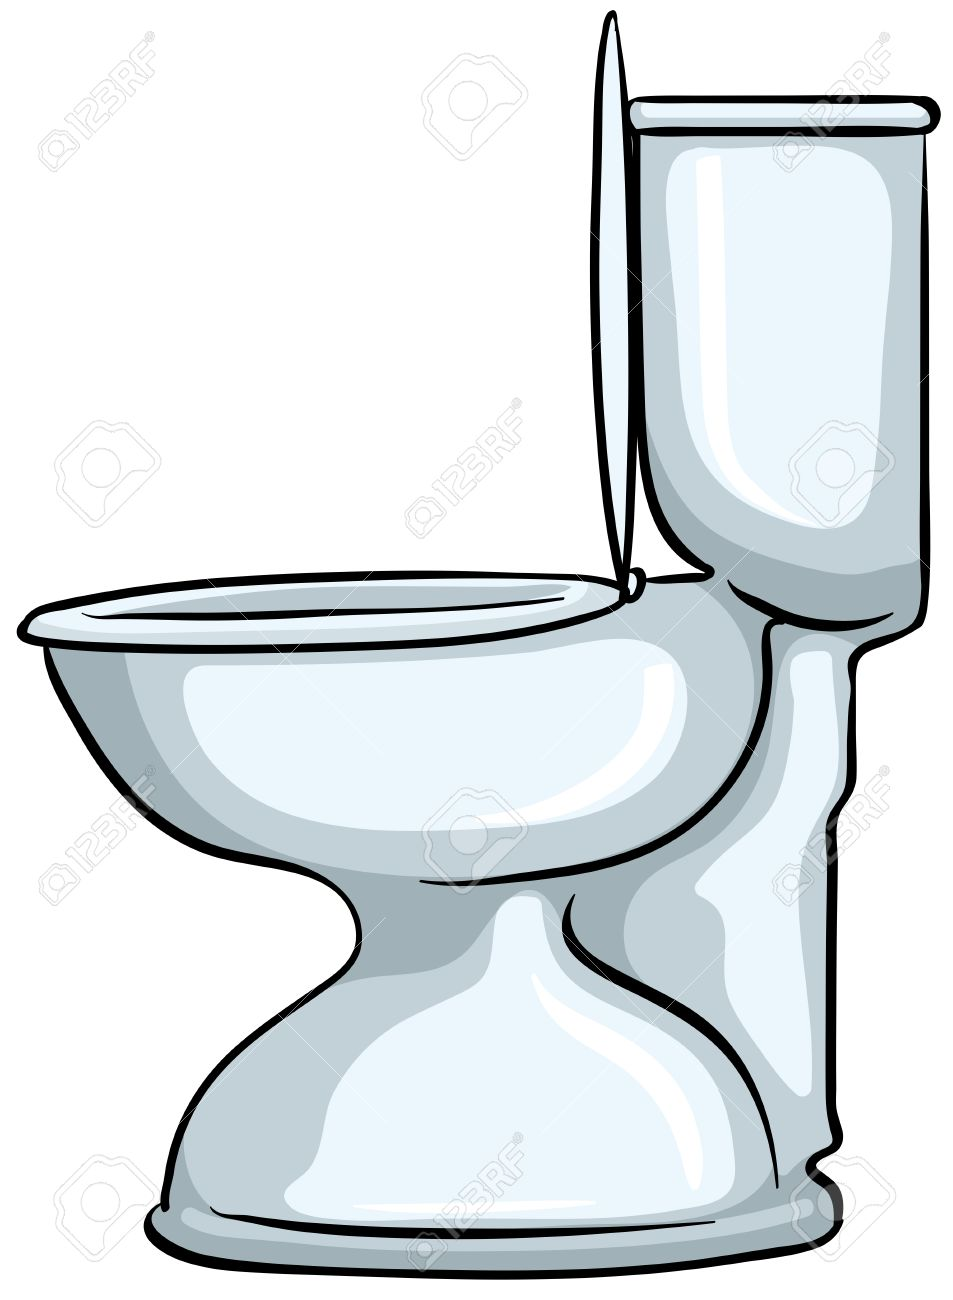 Close Up Toilet With The Lid Opened Stock Vector